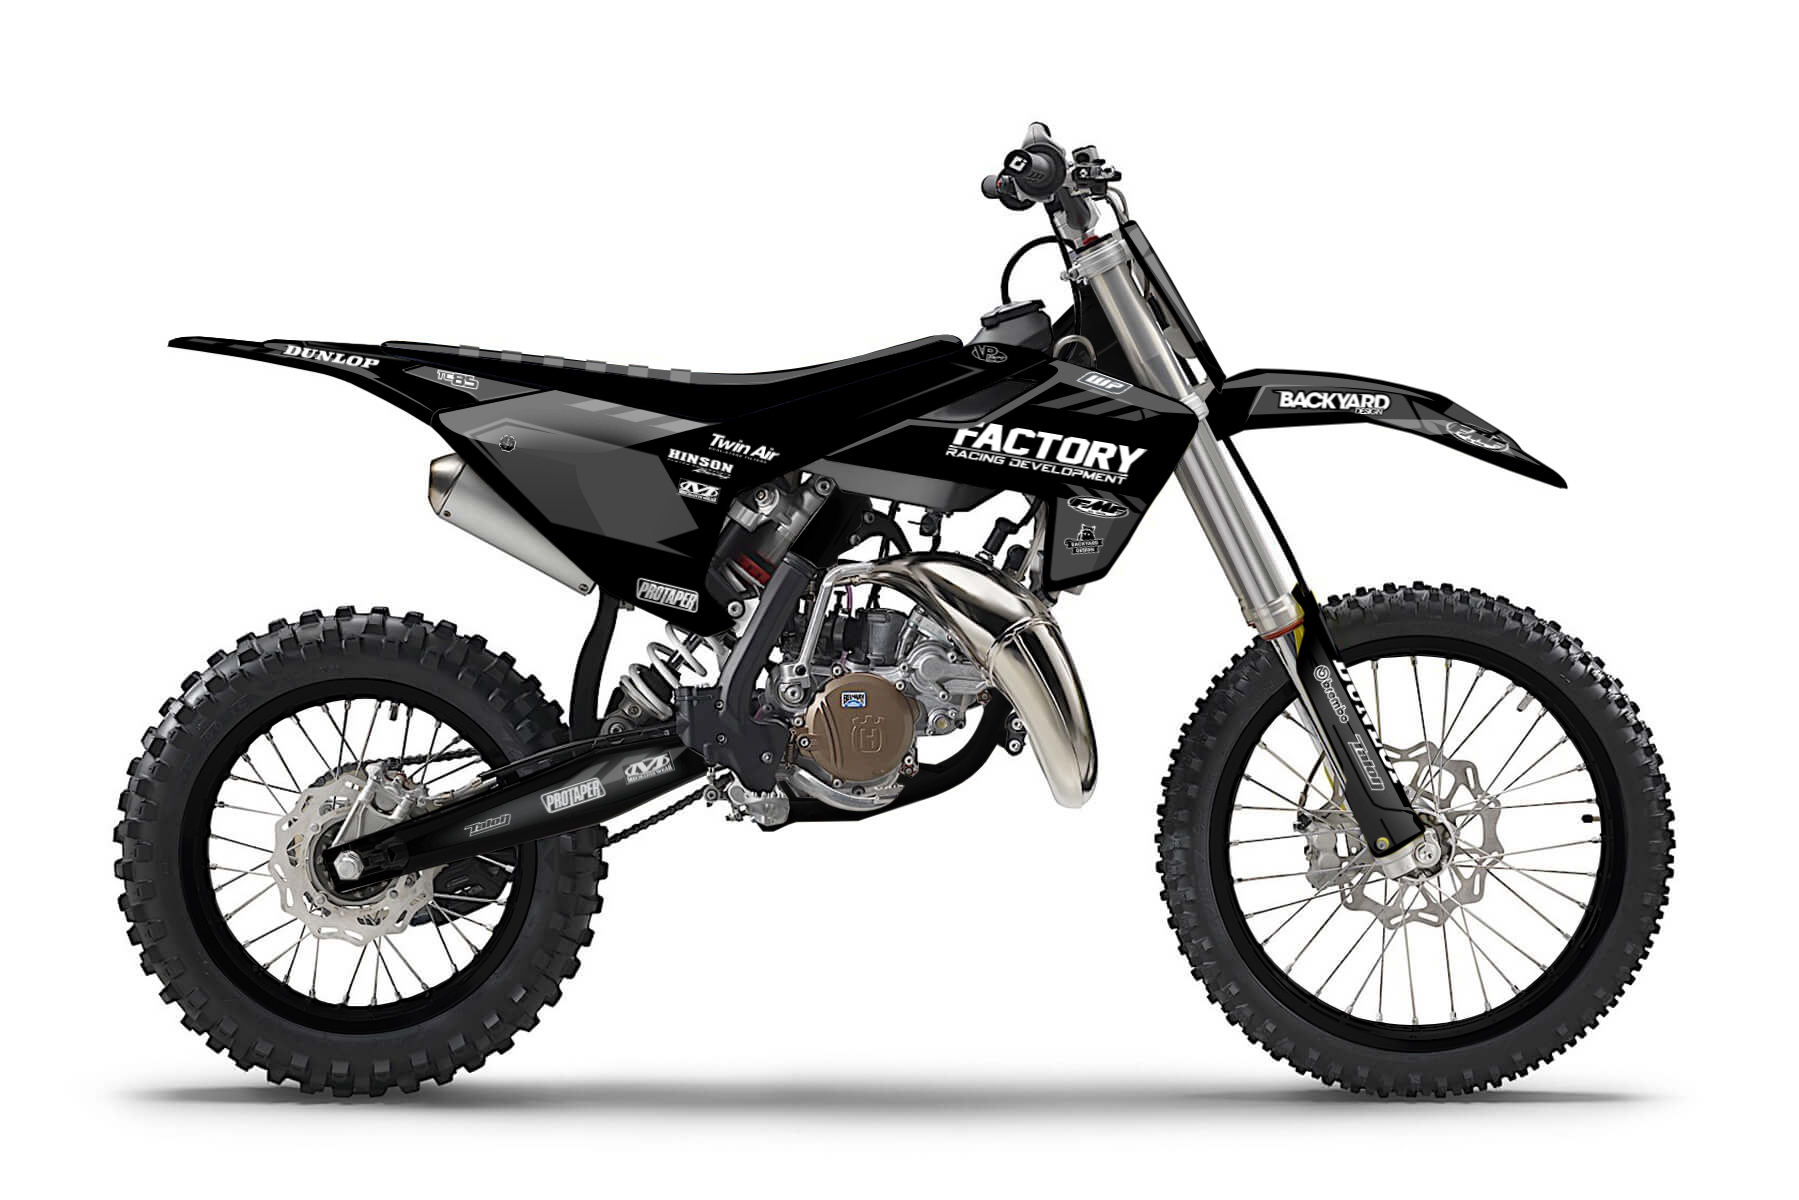 Husqvarna TC85 MX Graphic Kits  The Husqvarna TC85 gives you all you need to practise your skills to be on top of the competition one day. This bike is made for the dirt and perfect for practise.